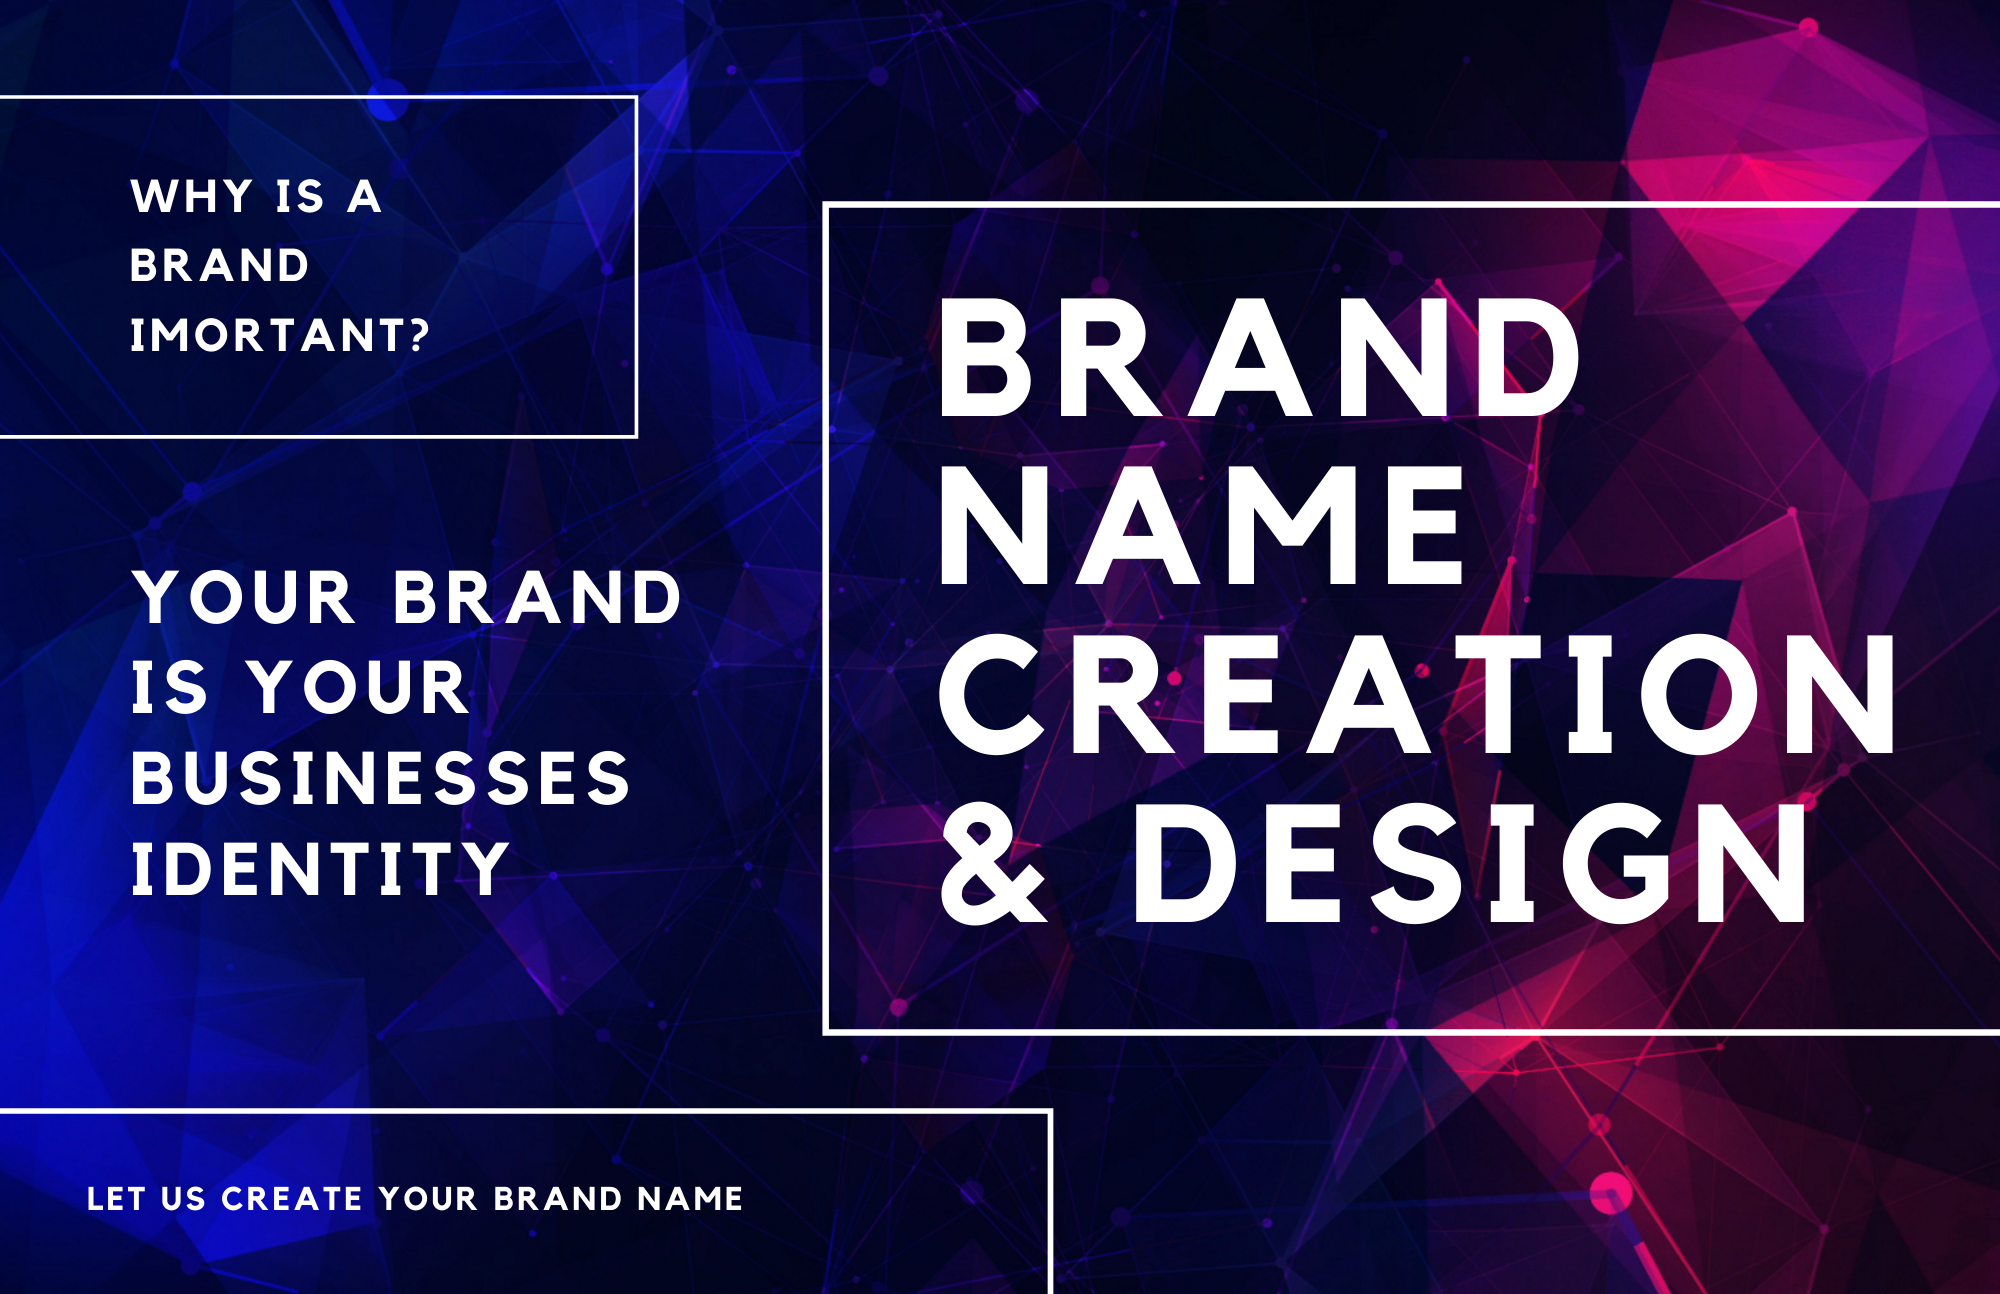 We Will Create A Brand Name And Design For Your Business